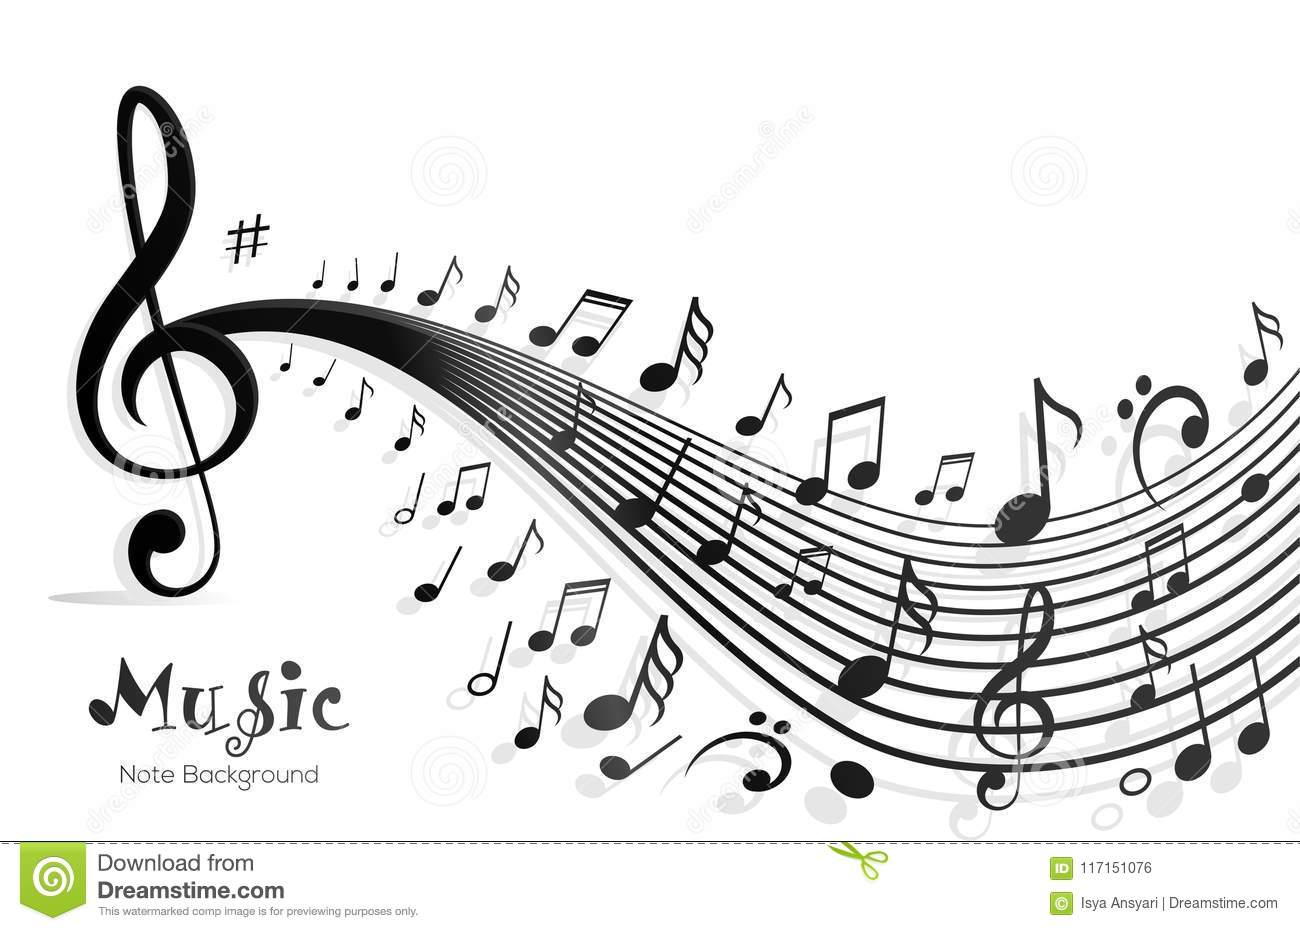 Music Notes Abstract Design Stock Vector - Illustration of